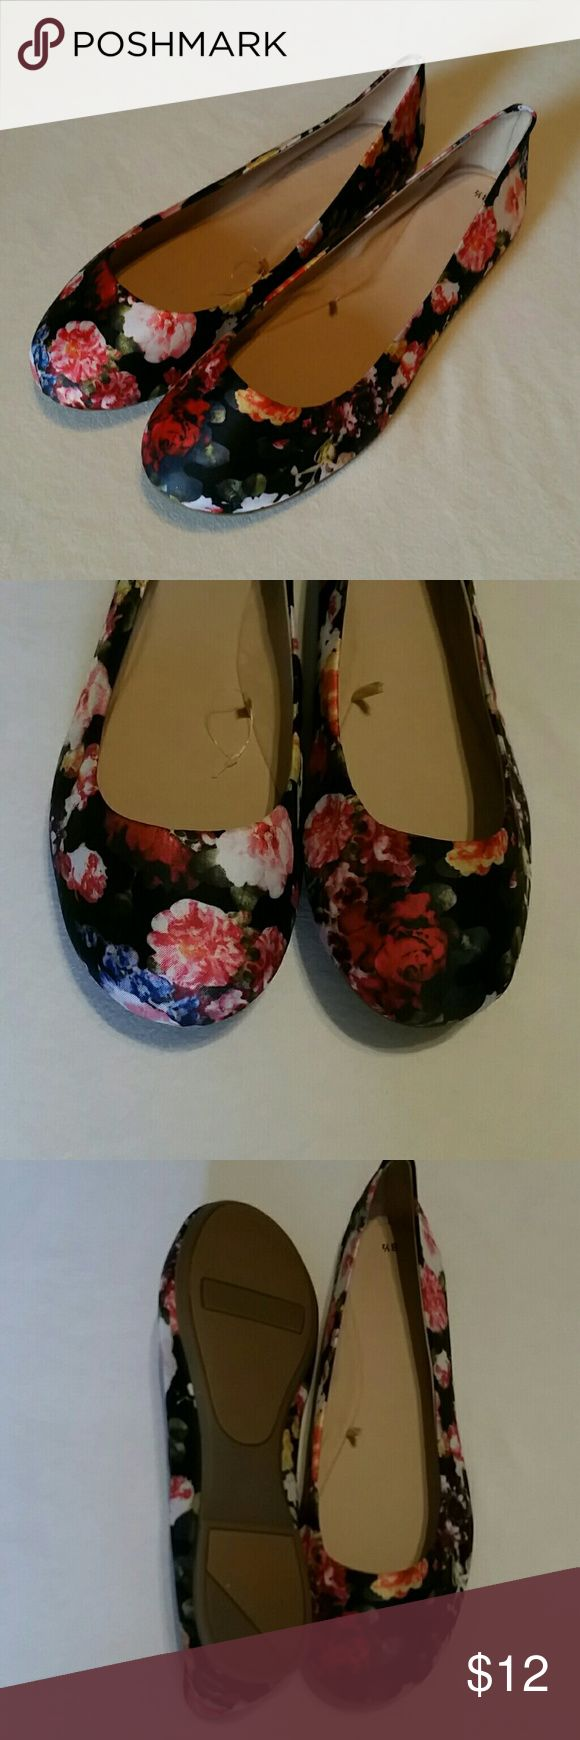 NWOT Floral Ballet Flats Cute new without tags floral ballet flats. Cute and very comfortable. Charlotte Russe Shoes Flats & Loafers